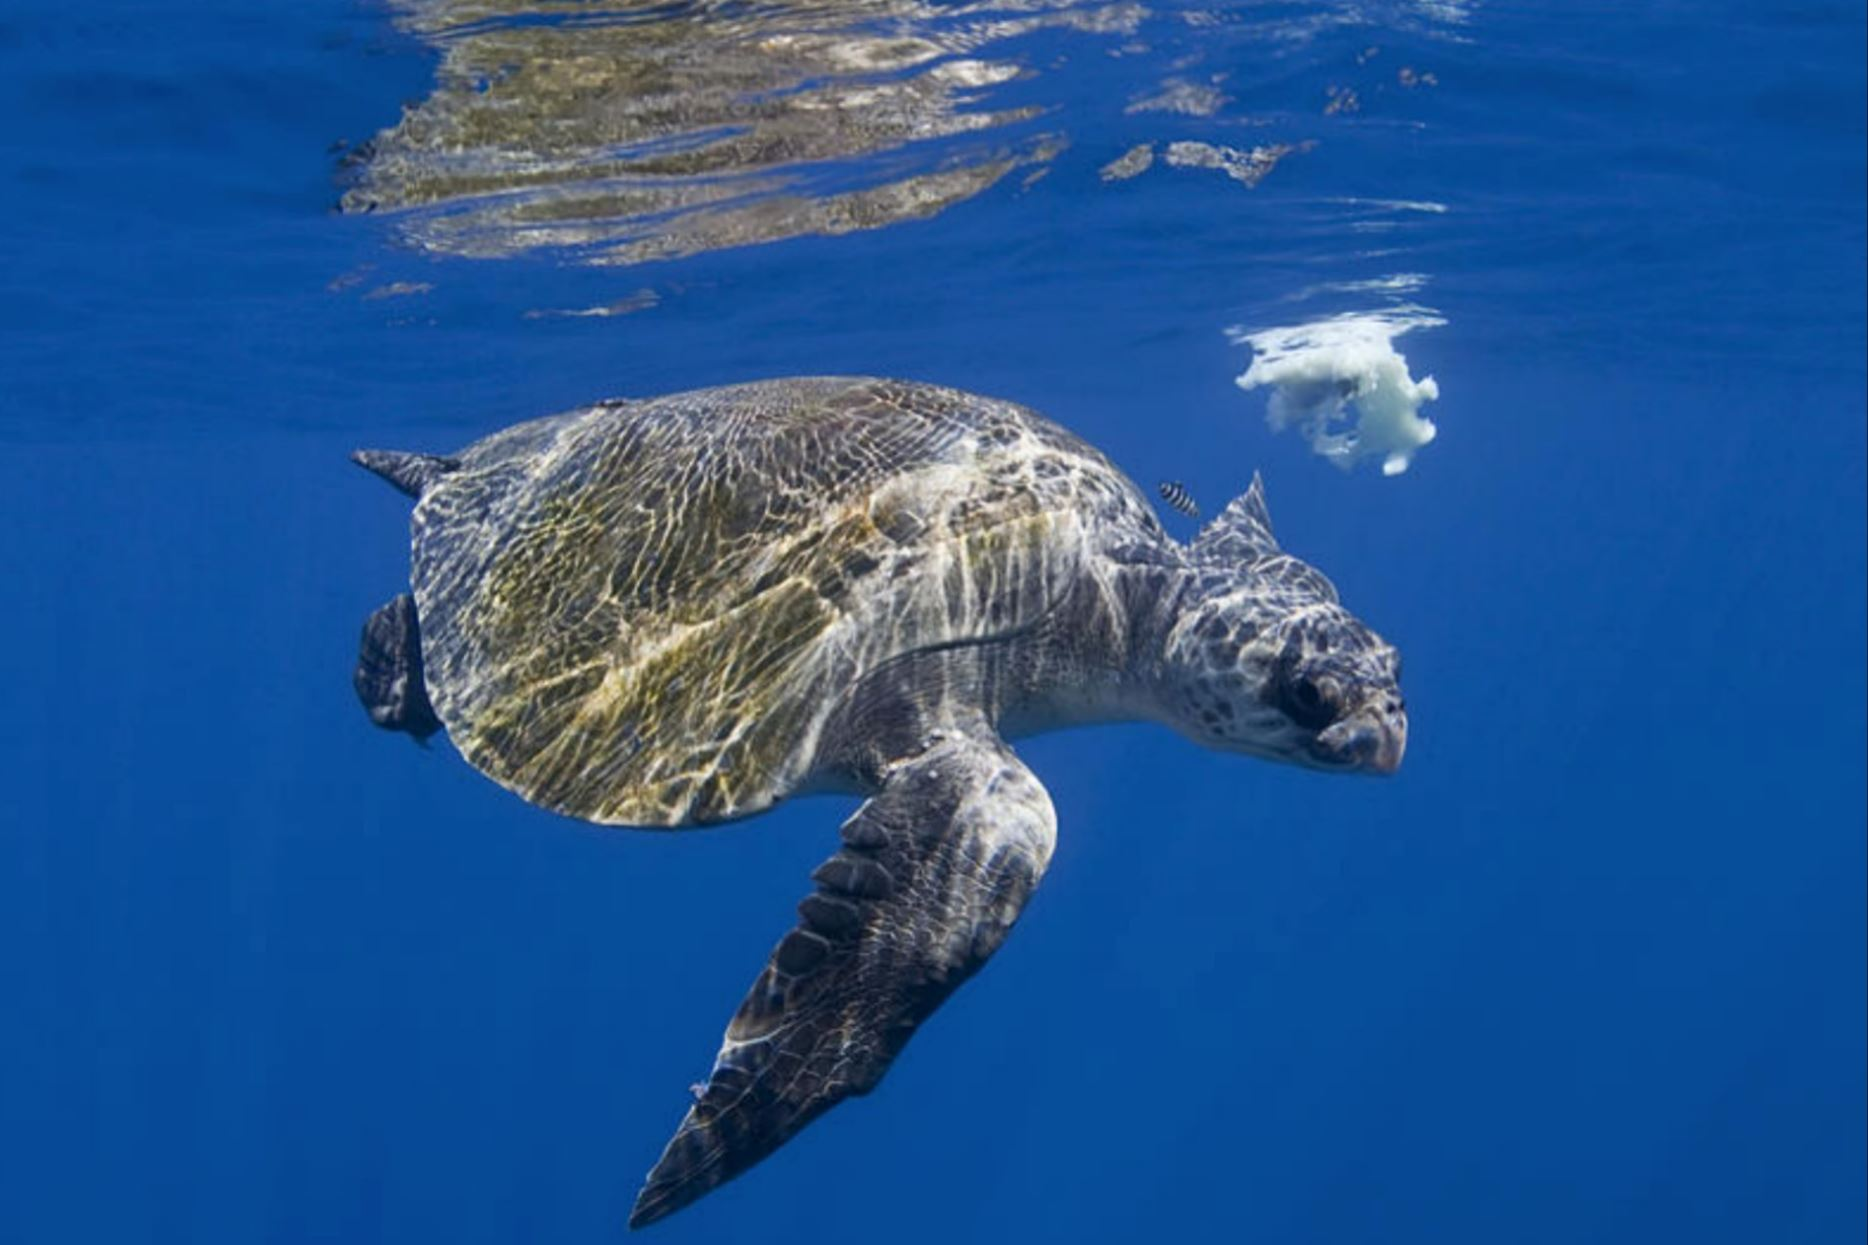 An Olive Ridley turtle roams the ocean. Photo courtesy WWF